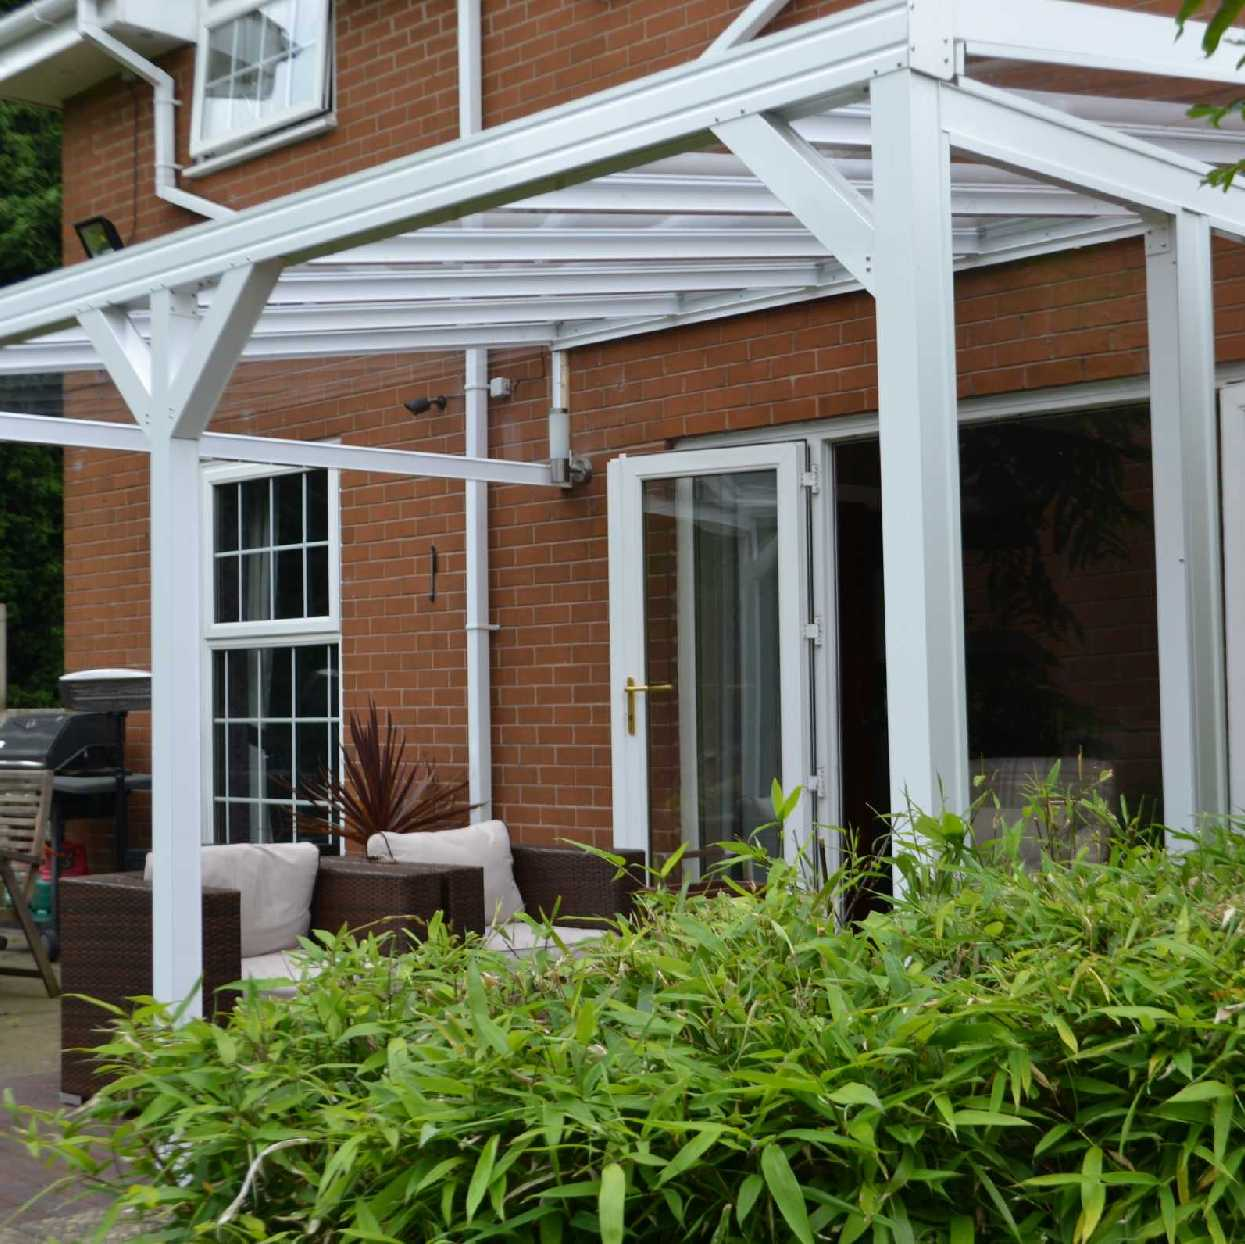 Omega Smart White Lean-To Canopy with 6mm Glass Clear Plate Polycarbonate Glazing - 3.1m (W) x 4.0m (P), (2) Supporting Posts from Omega Build